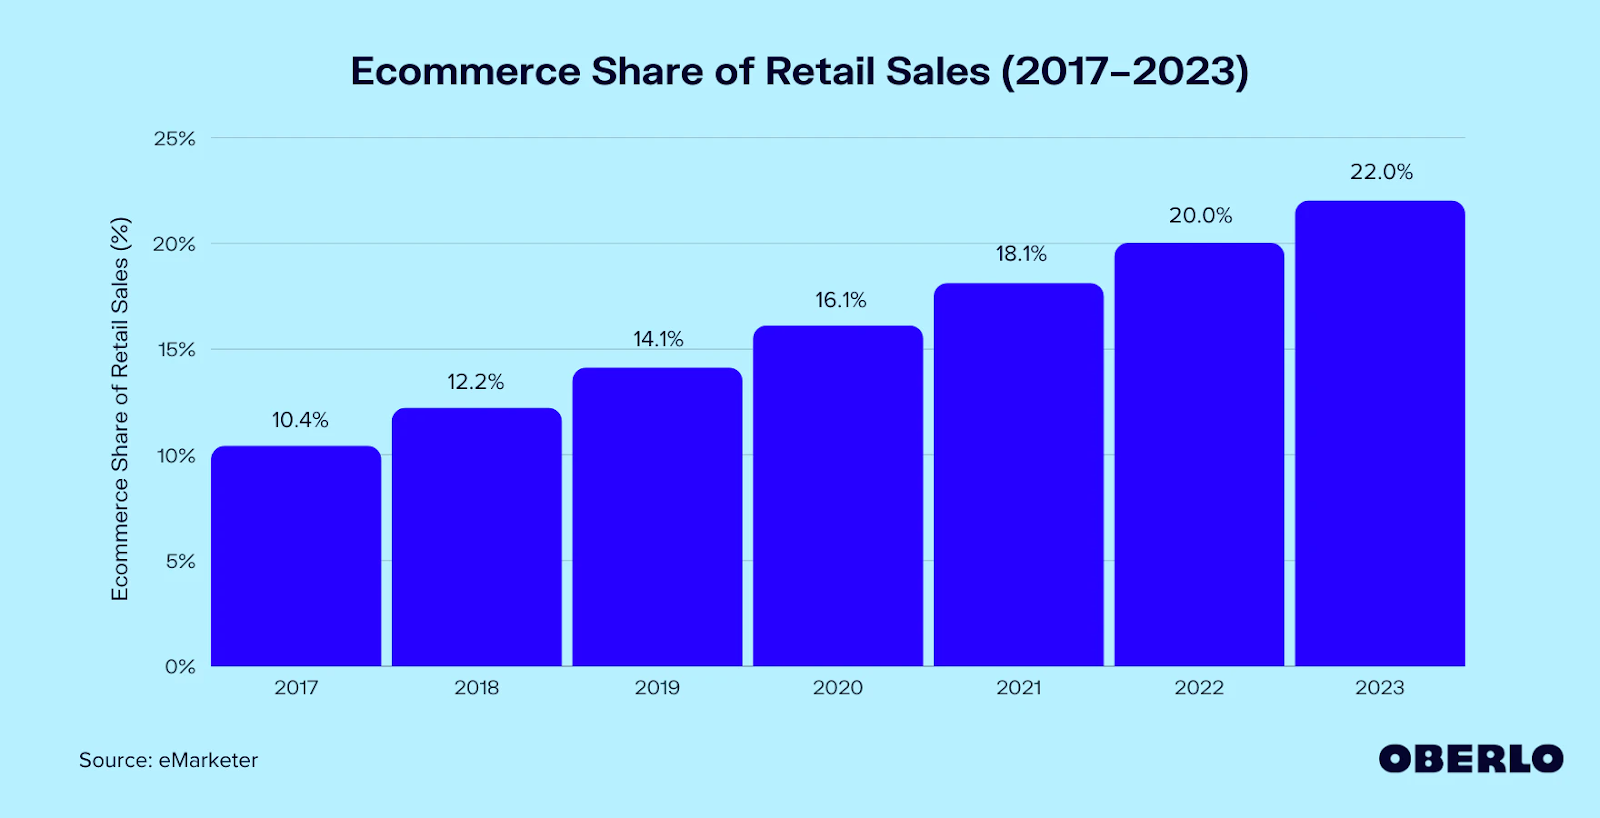 OBERLO statistic on ecommerce retail sales